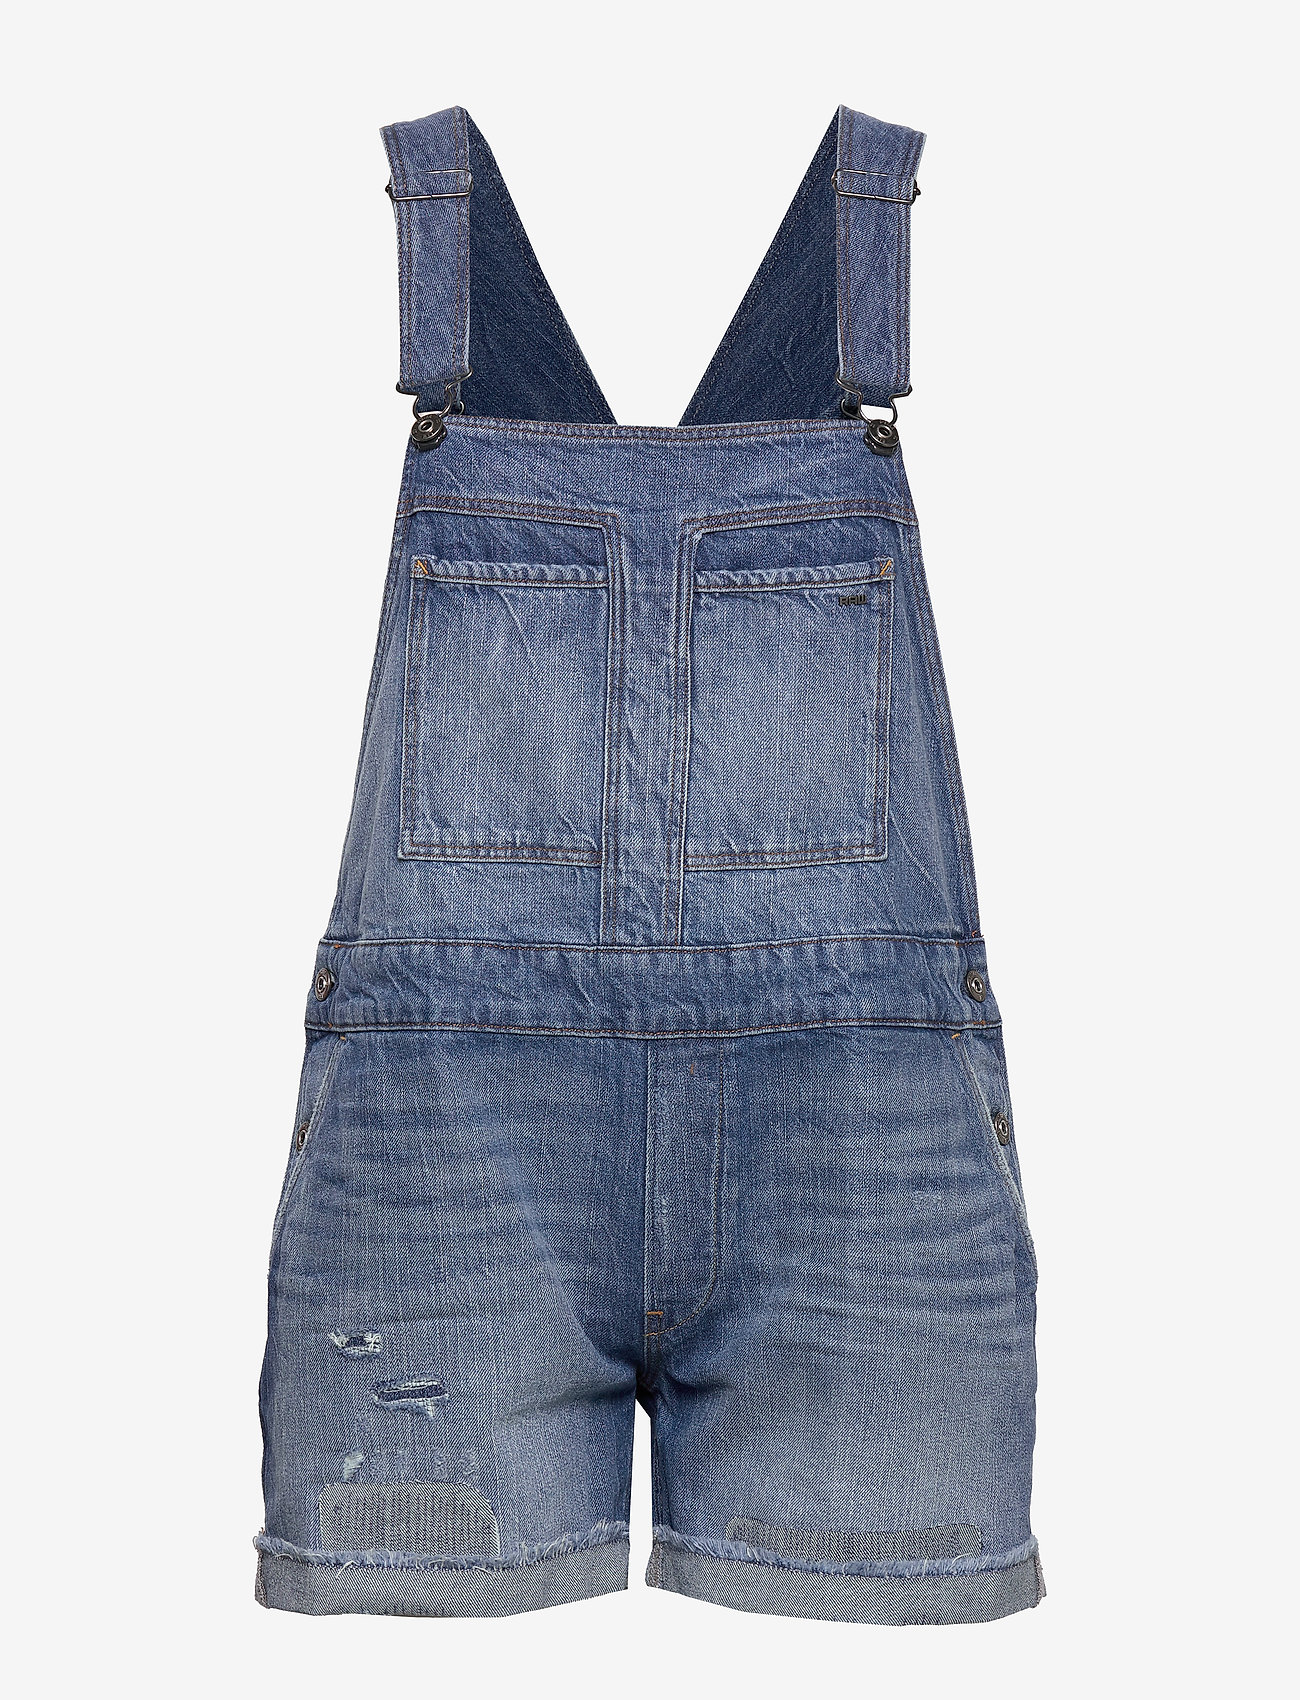 G-star RAW - Faeroes bf Short Overall rp tu Wmn - jumpsuits - faded ripped shore - 0